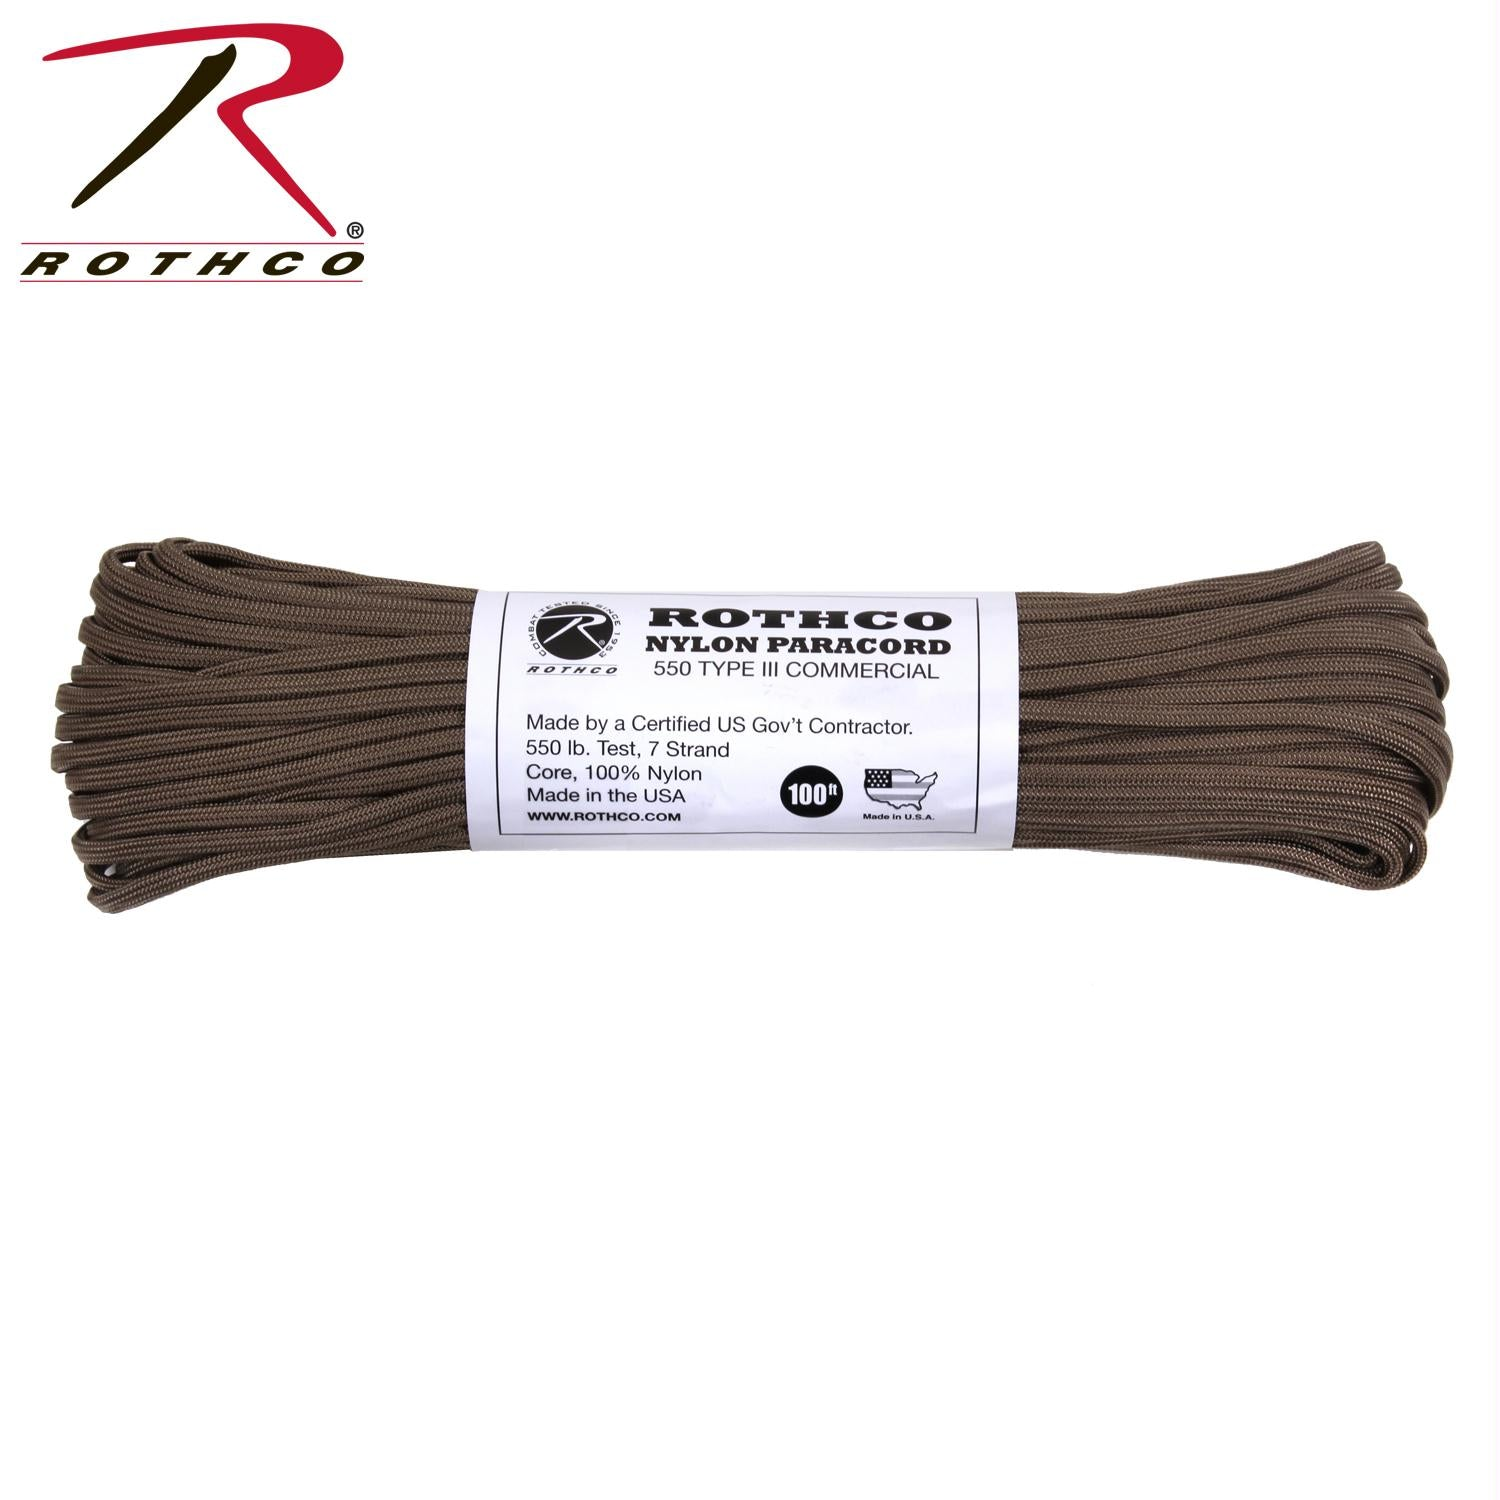 Rothco Nylon Paracord Type III 550 LB 100FT - Coyote Brown